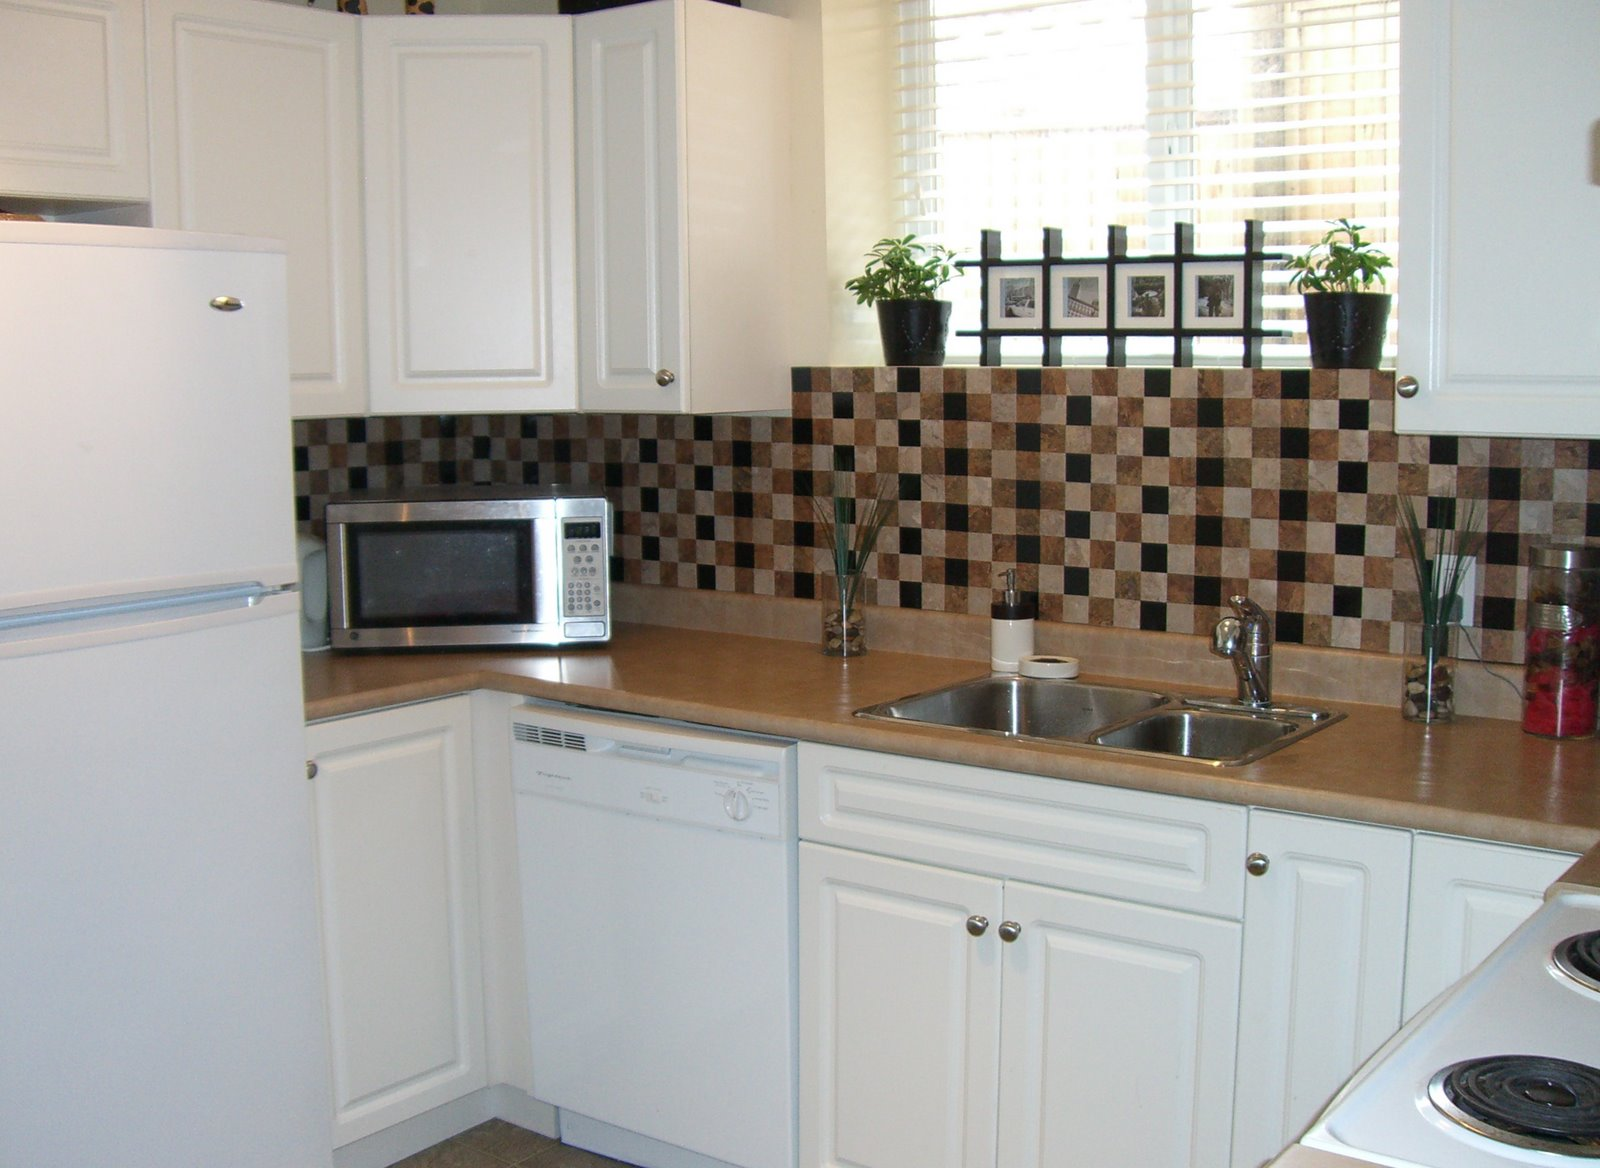 Plastic Floor Tiles Kitchen The Social Home Diy Renters Backsplash With Vinyl Tile